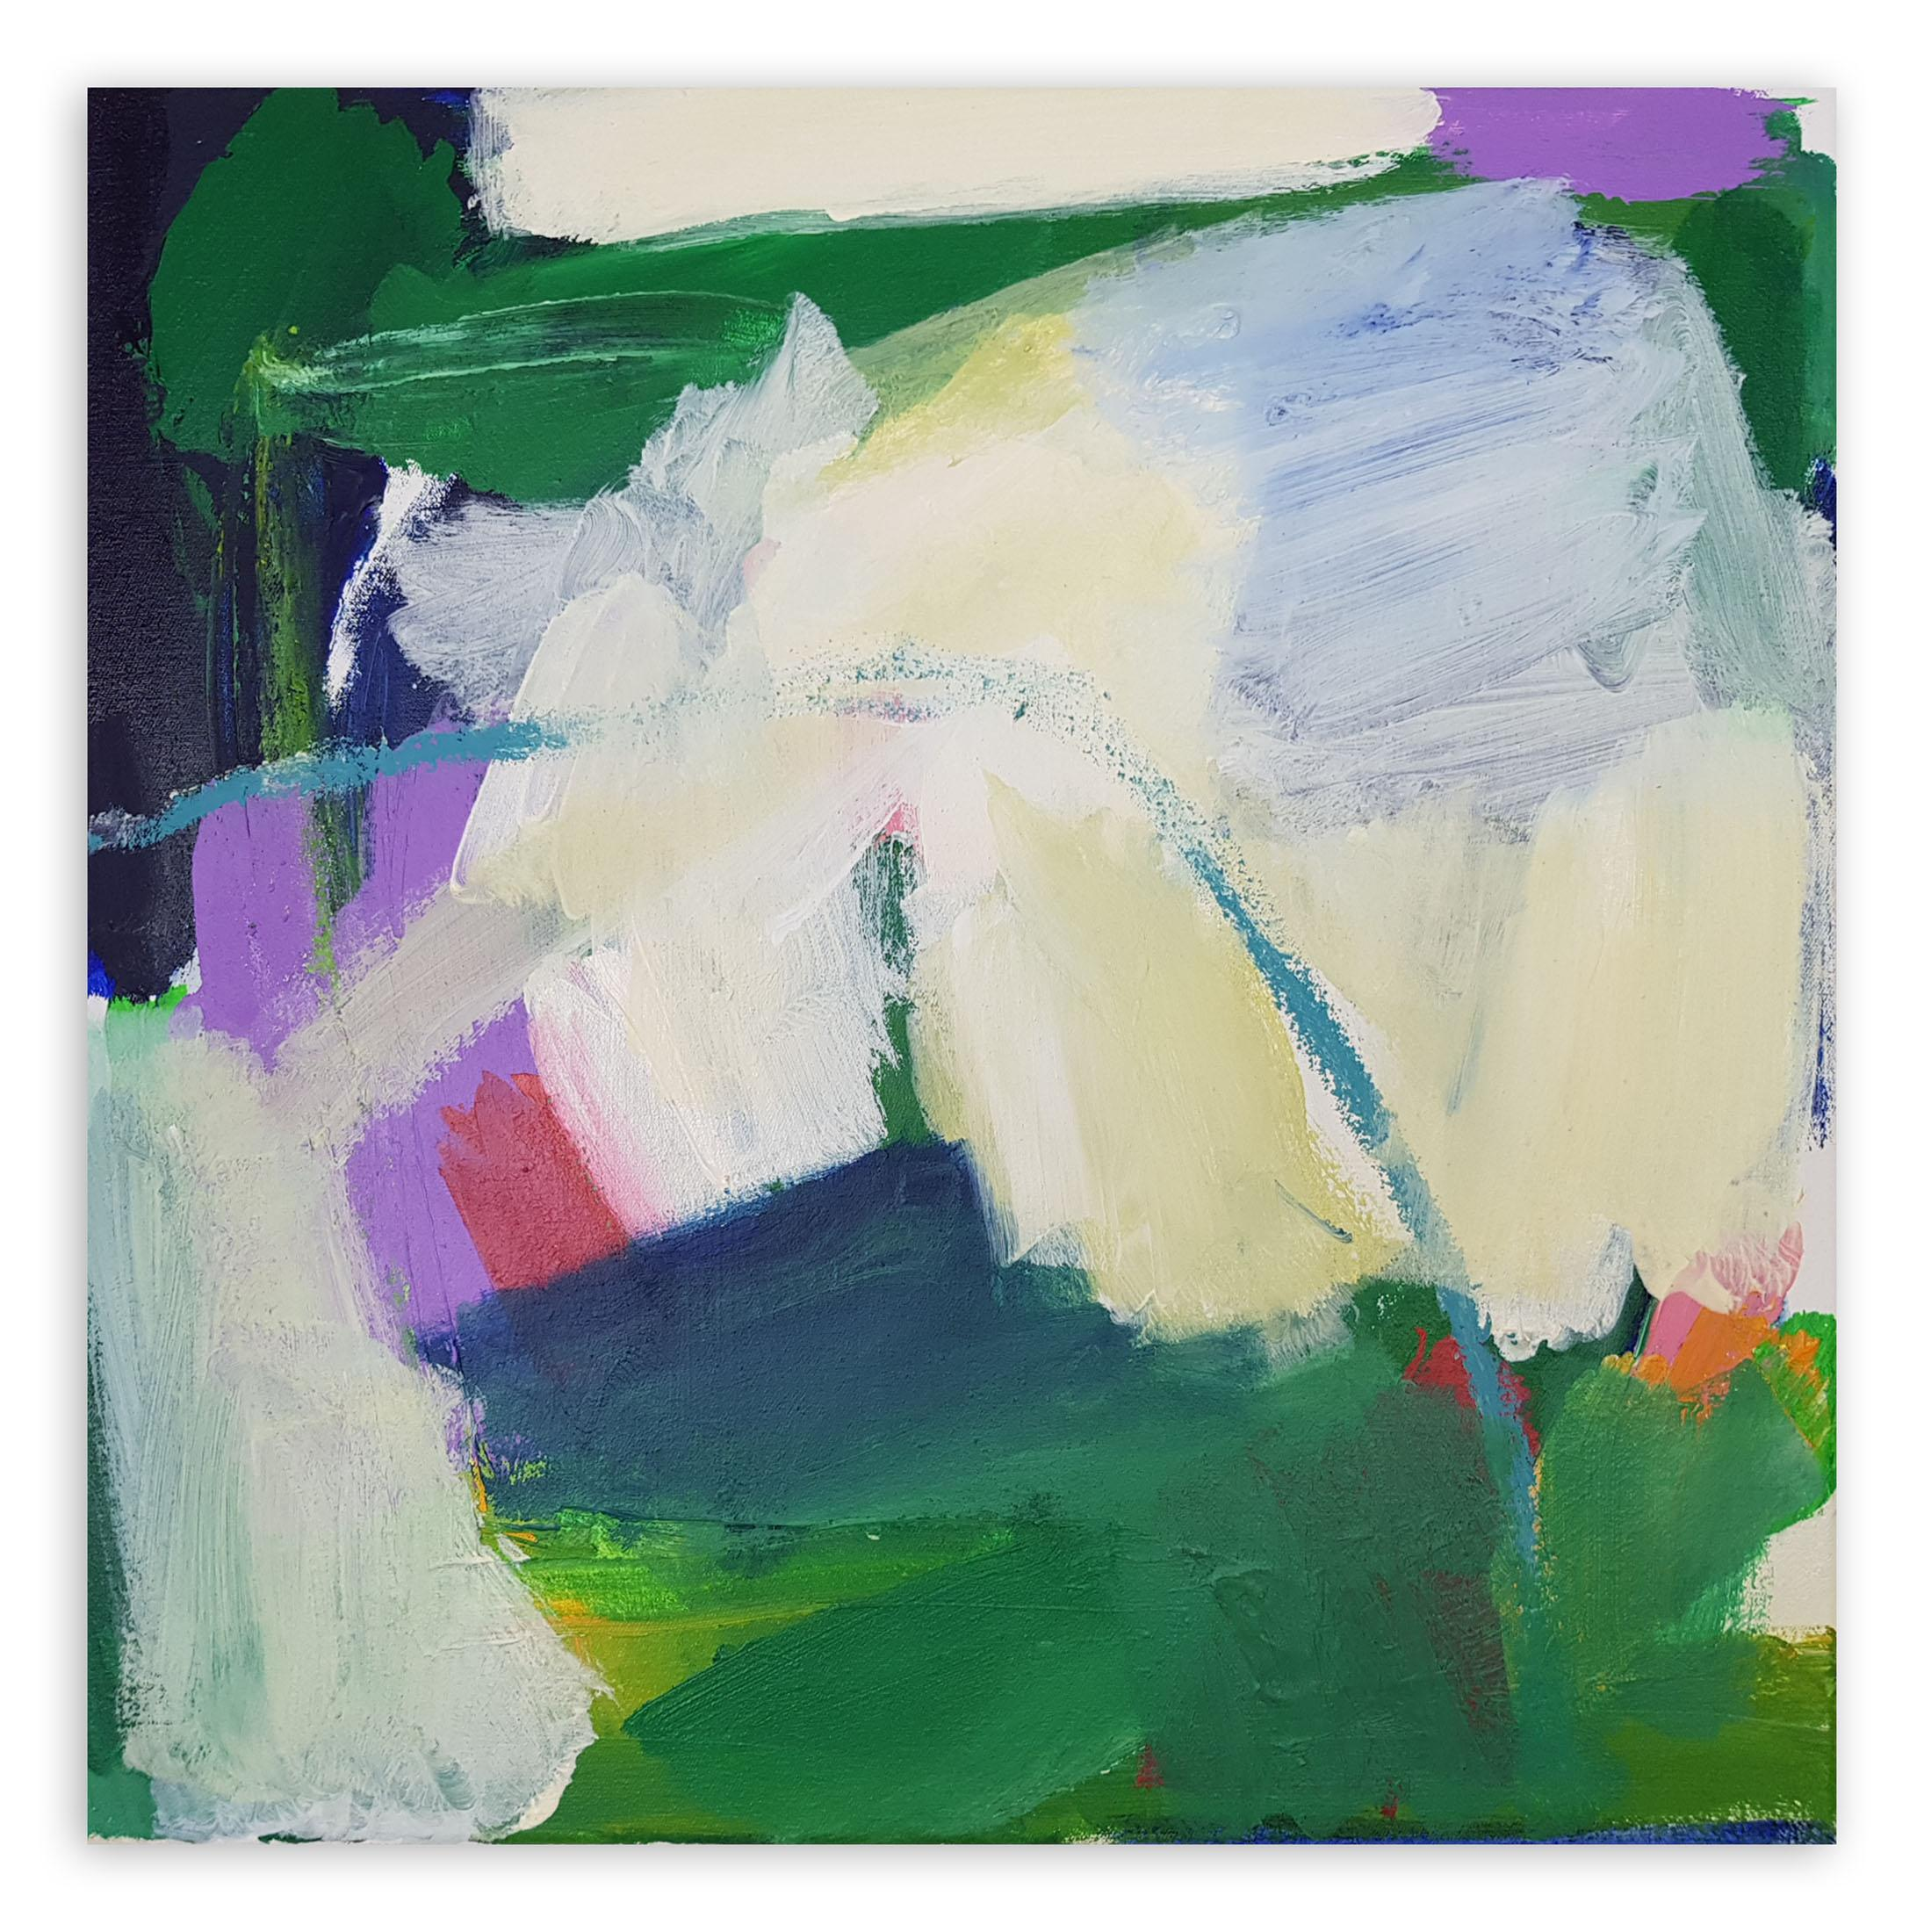 Green hope (Abstract painting)